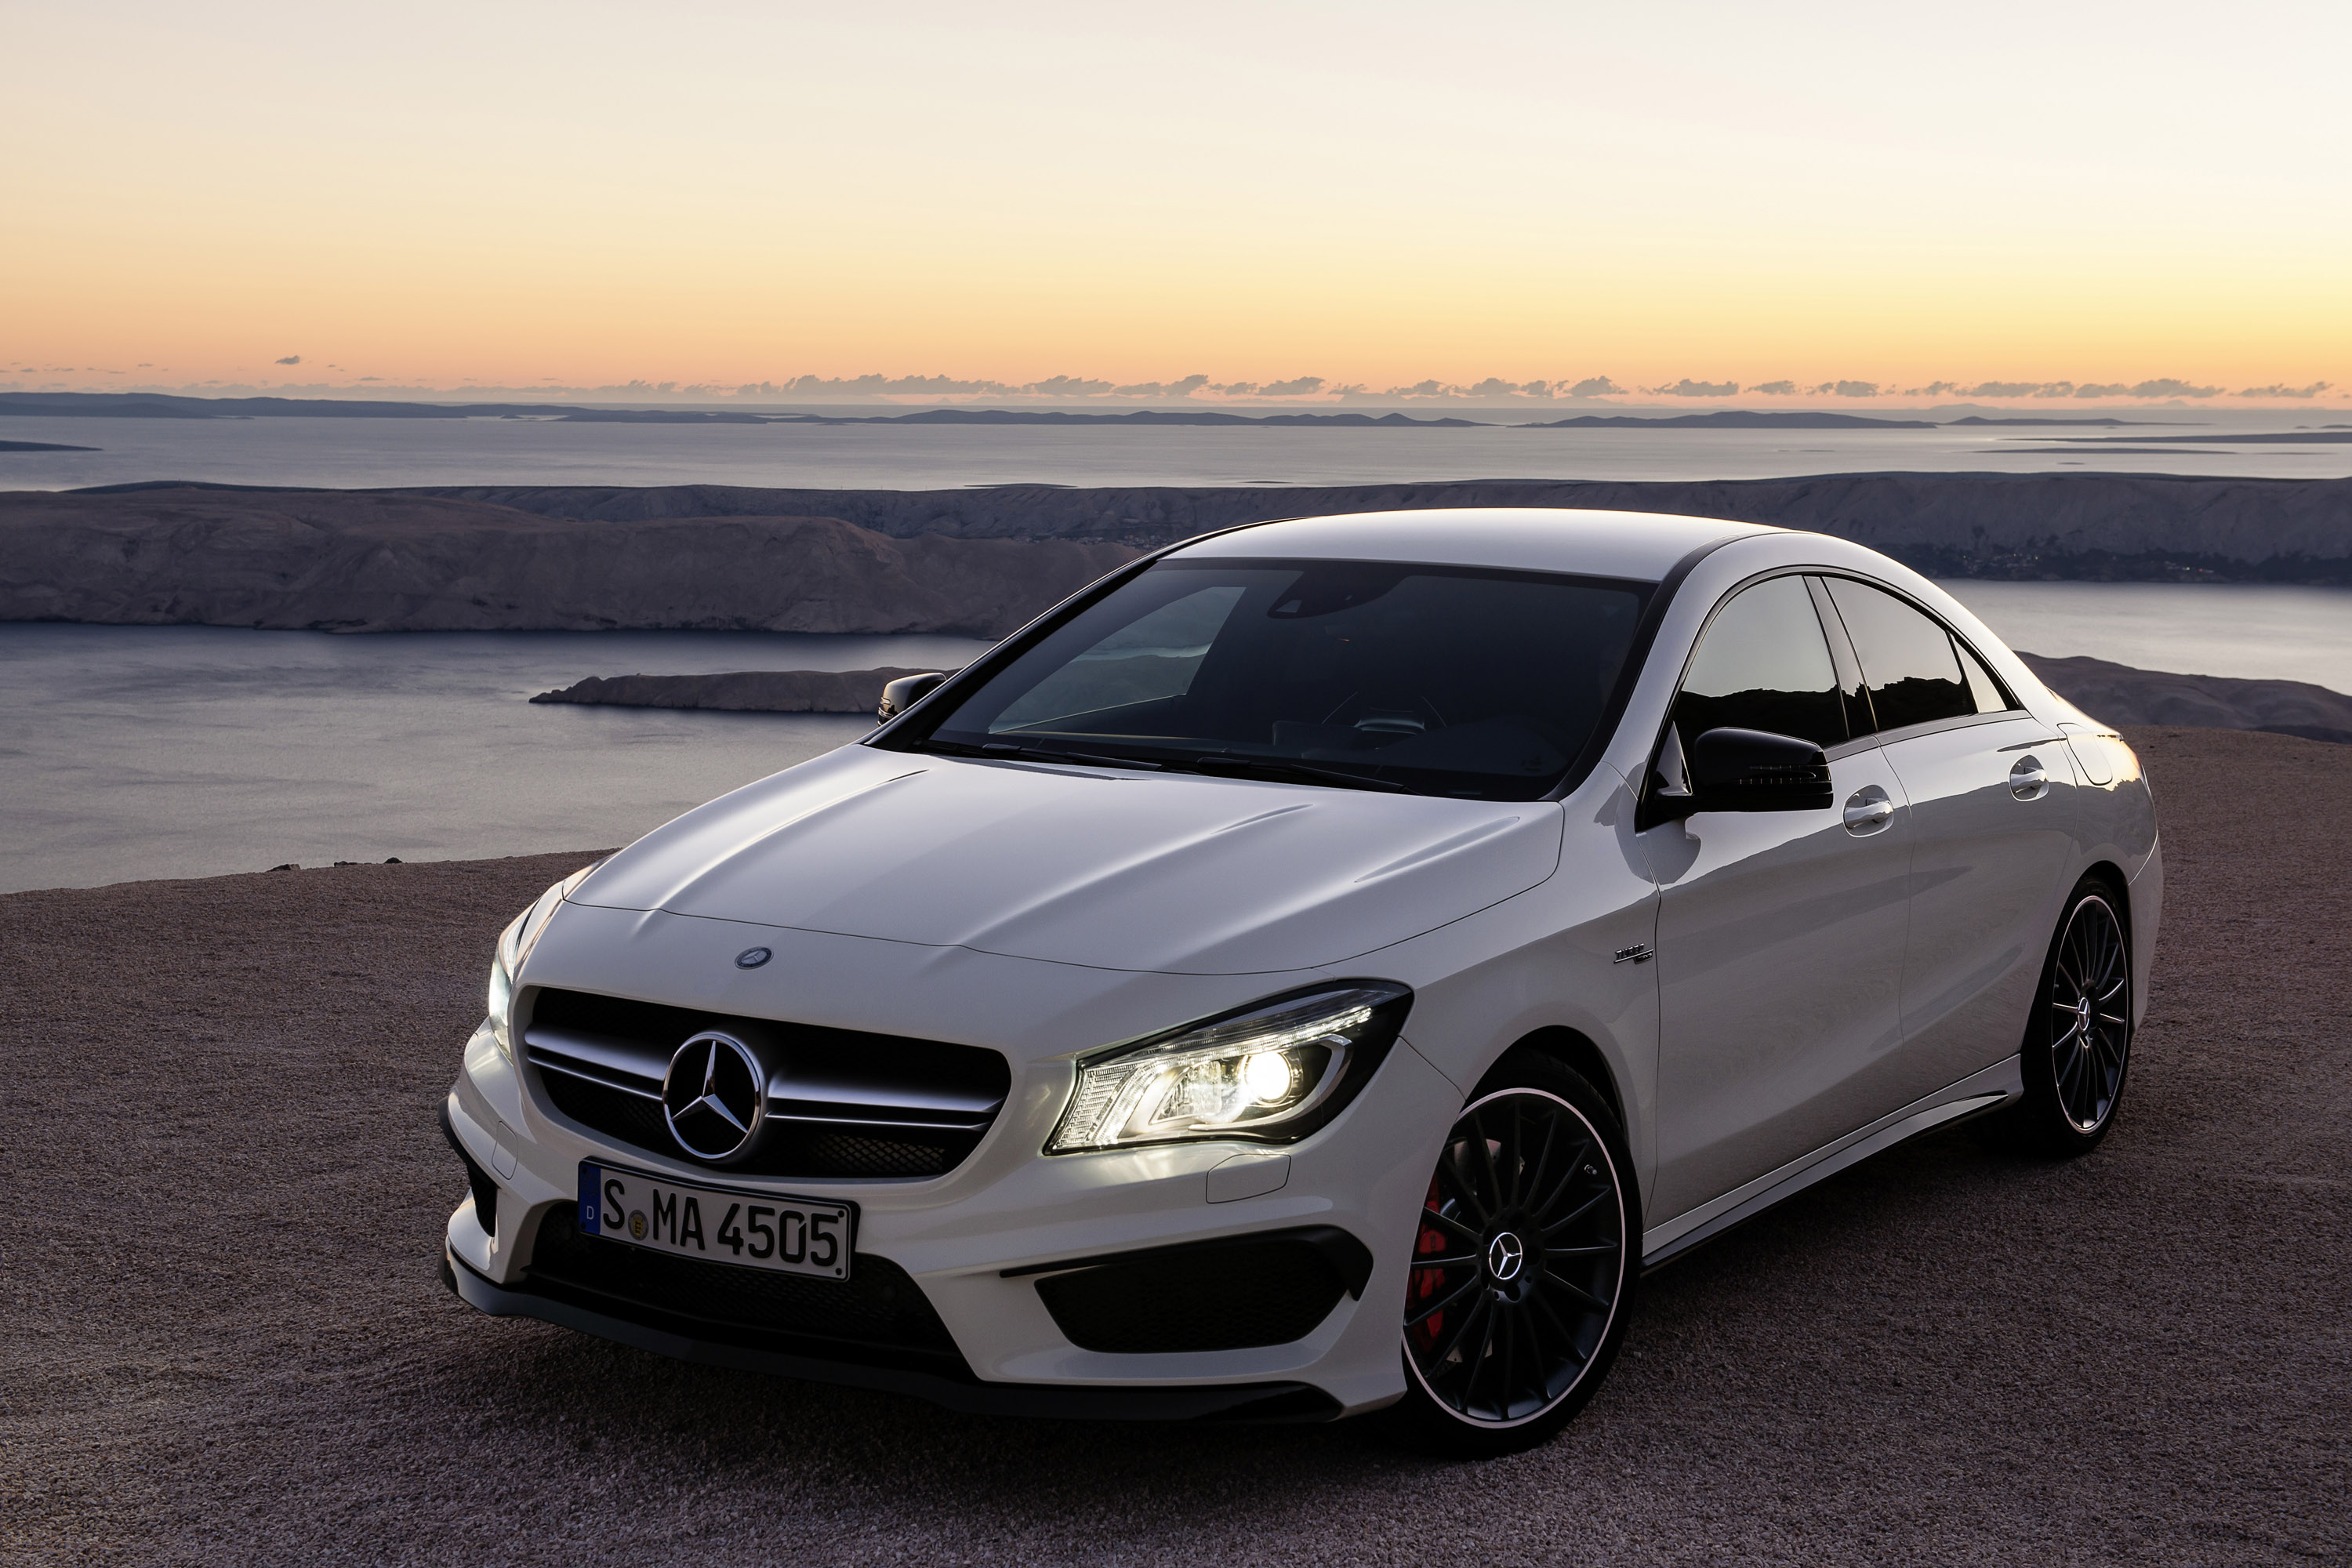 2014 mercedes benz cla 45 amg us price 47 450